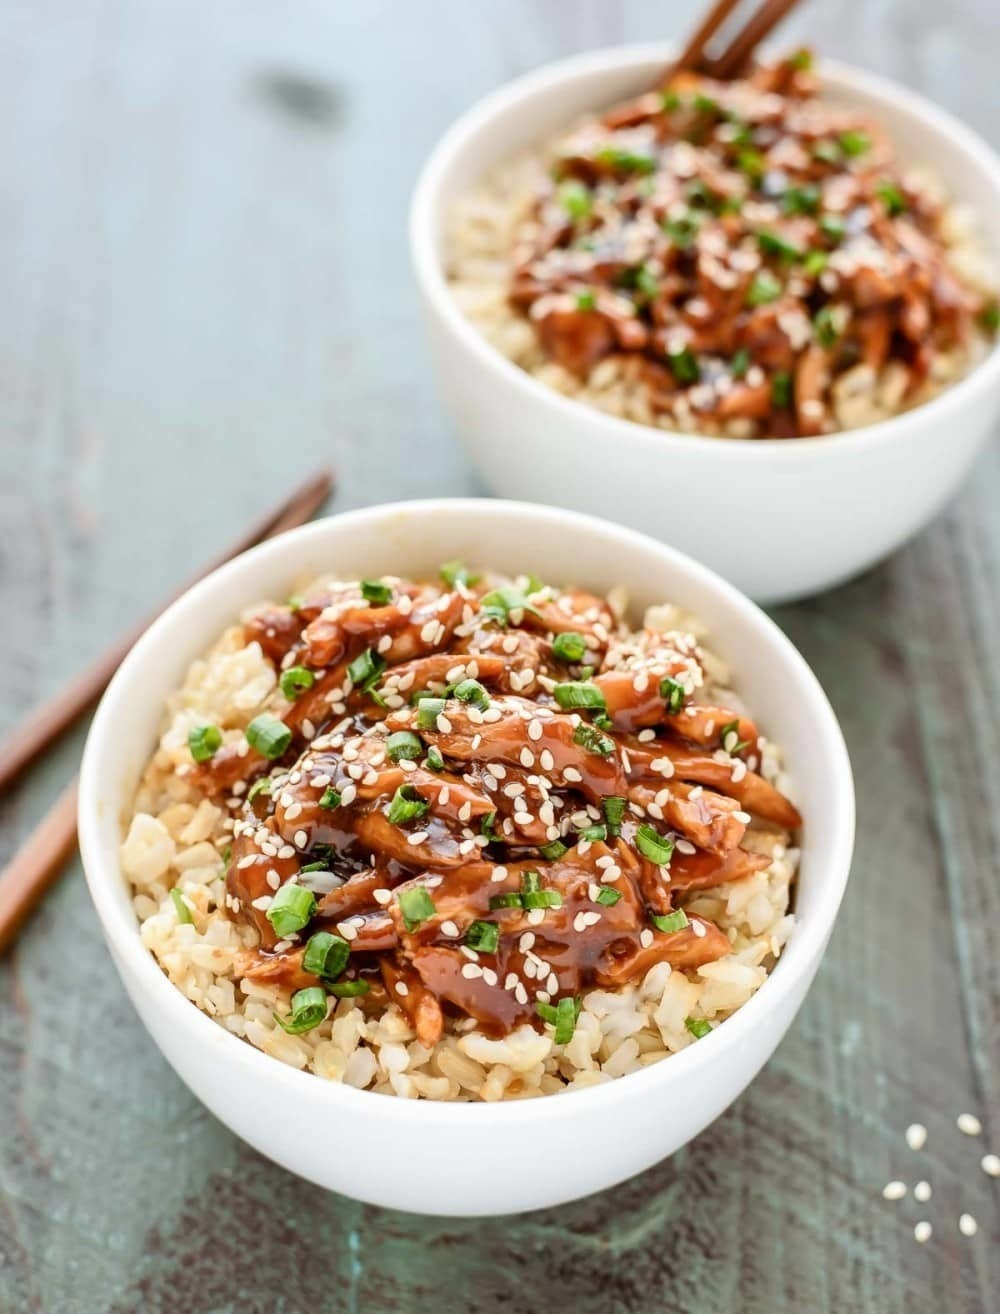 This sweet and tangy sauce comes together with ingredients you most likely have sitting in your pantry: soy sauce, rice vinegar, honey, brown sugar, garlic, and ginger. Get the recipe.